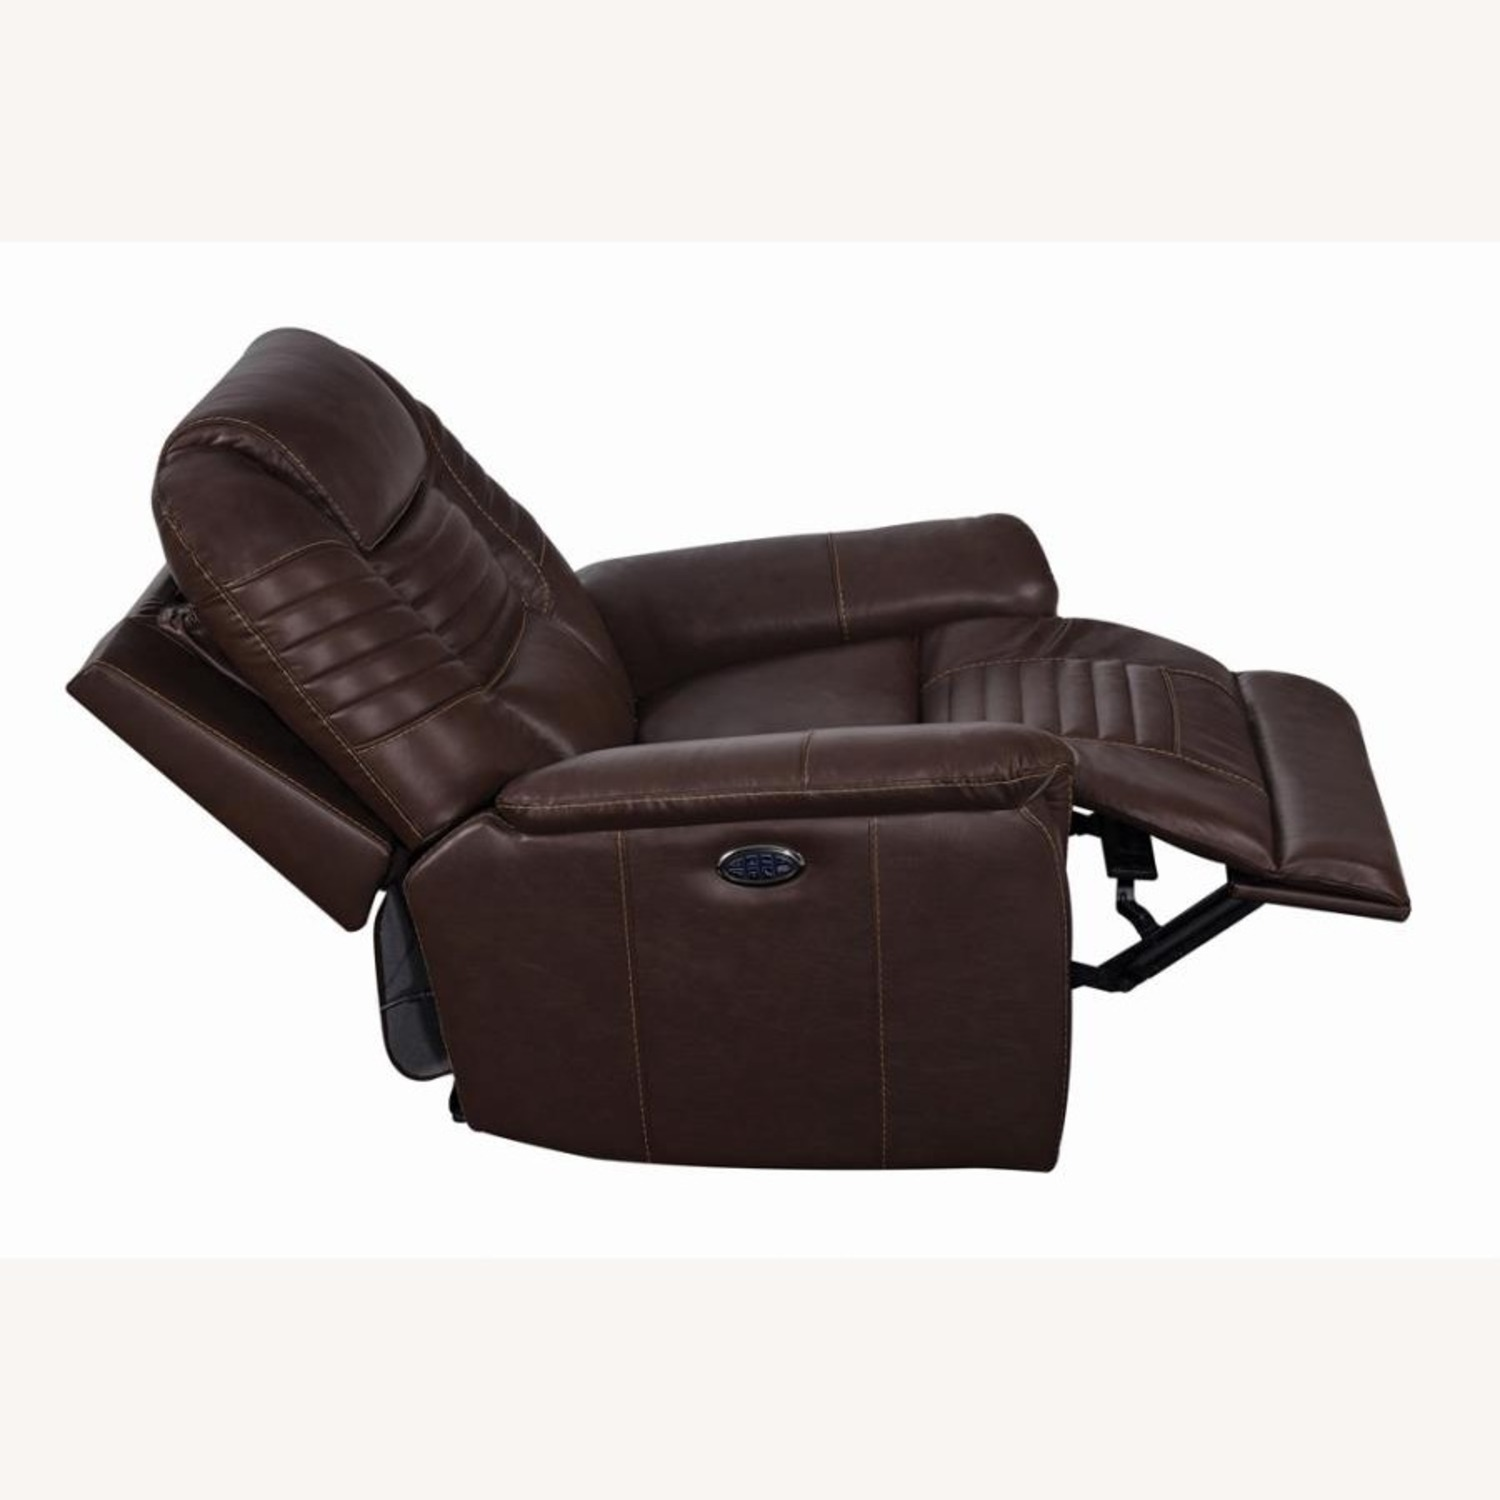 Power Recliner In Cozy Brown Leather Upholstery - image-3